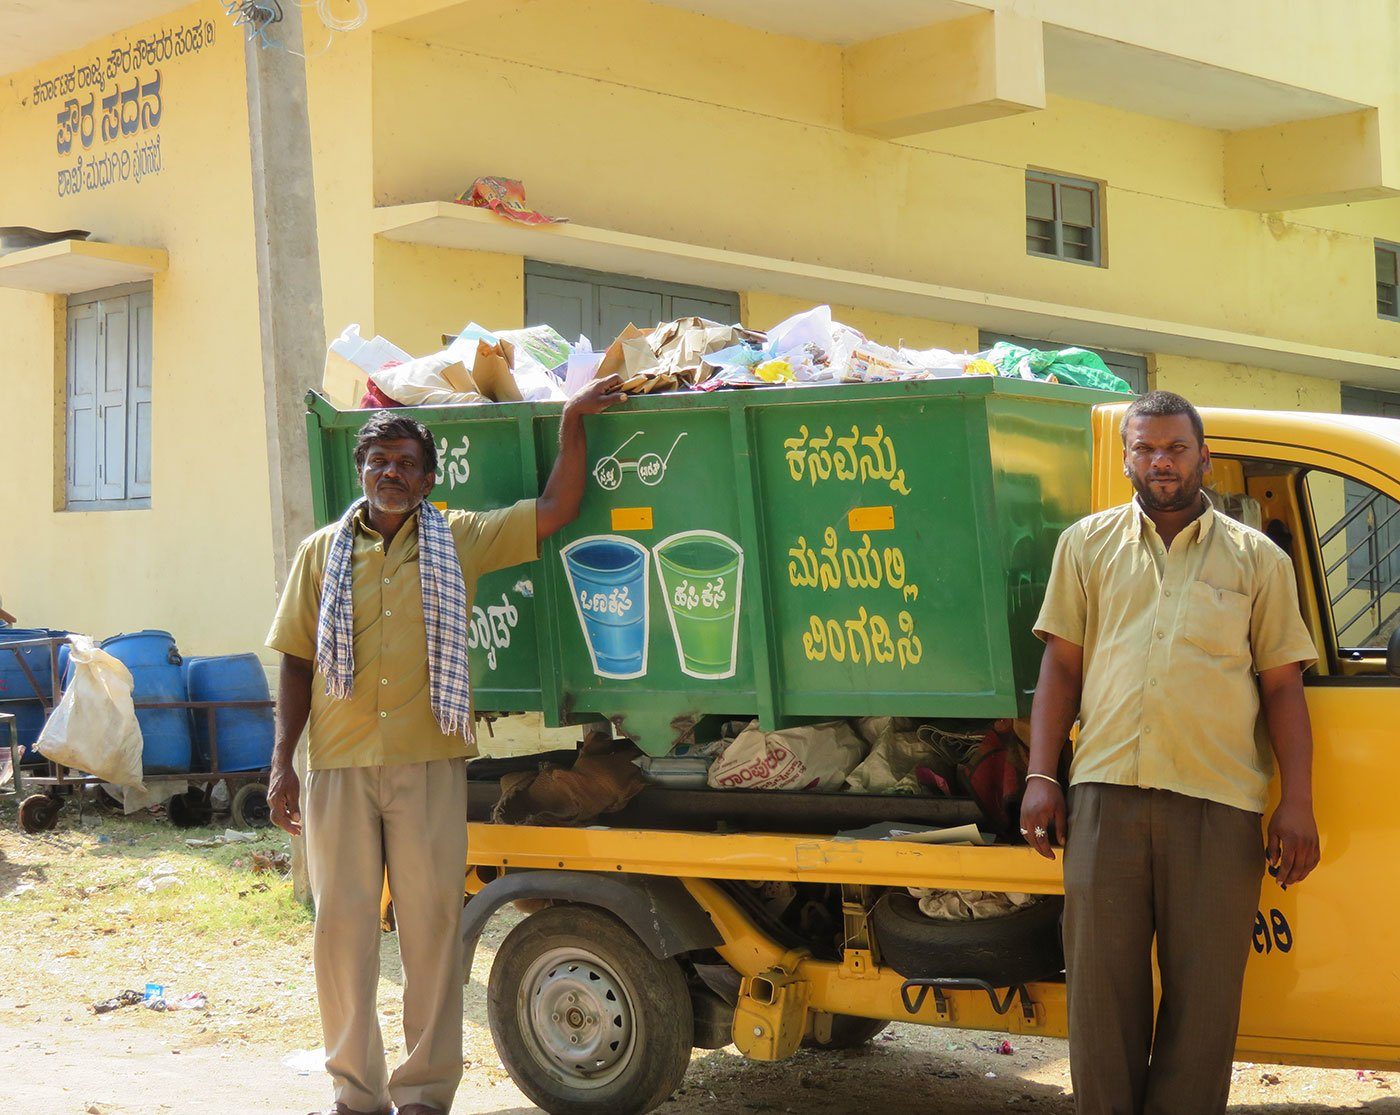 Puttanna (left) and Manjunath (right) standing next to their waste disposal pickup truck. The two men also drive a jetting machine to clean open drains and septic tanks. Often, they must immerse themselves in  these pits to stir the waste and make it more soluble for the technological incompetent machine to do the job